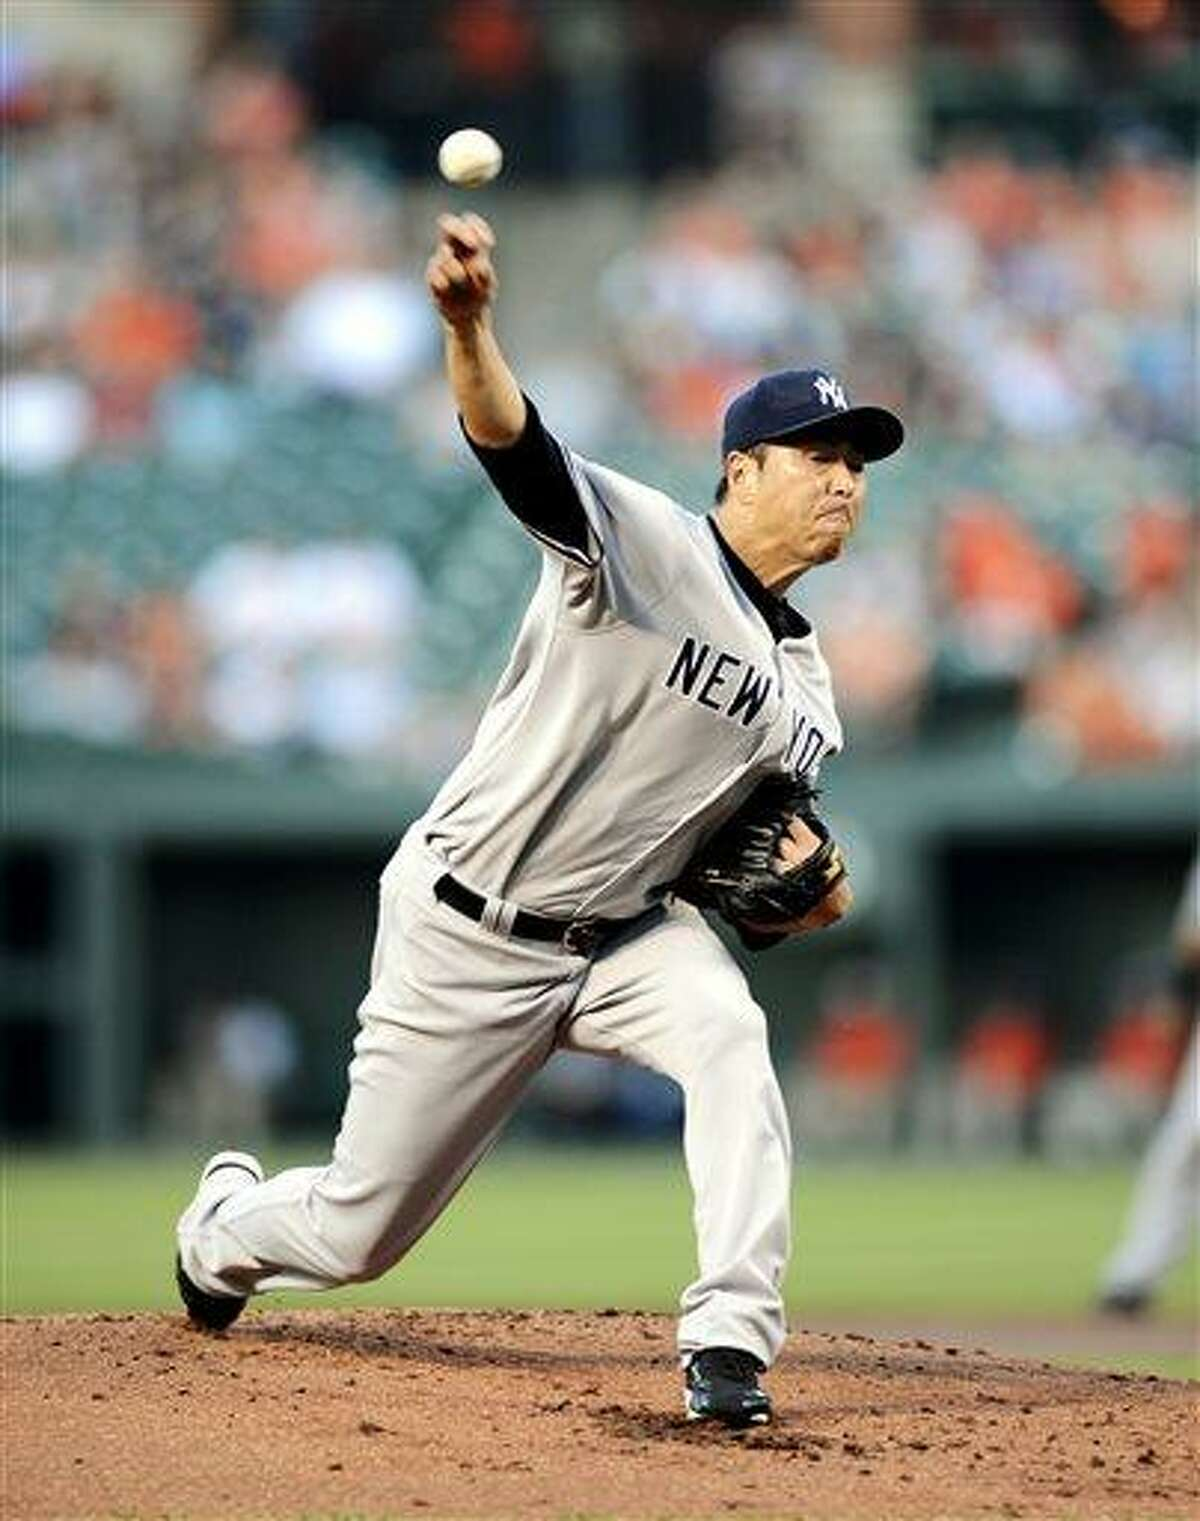 New York Yankees starting pitcher Hiroki Kuroda, of Japan, delivers against the Baltimore Orioles during the first inning of a baseball game, Wednesday, May 22, 2013, in Baltimore. (AP Photo/Nick Wass)